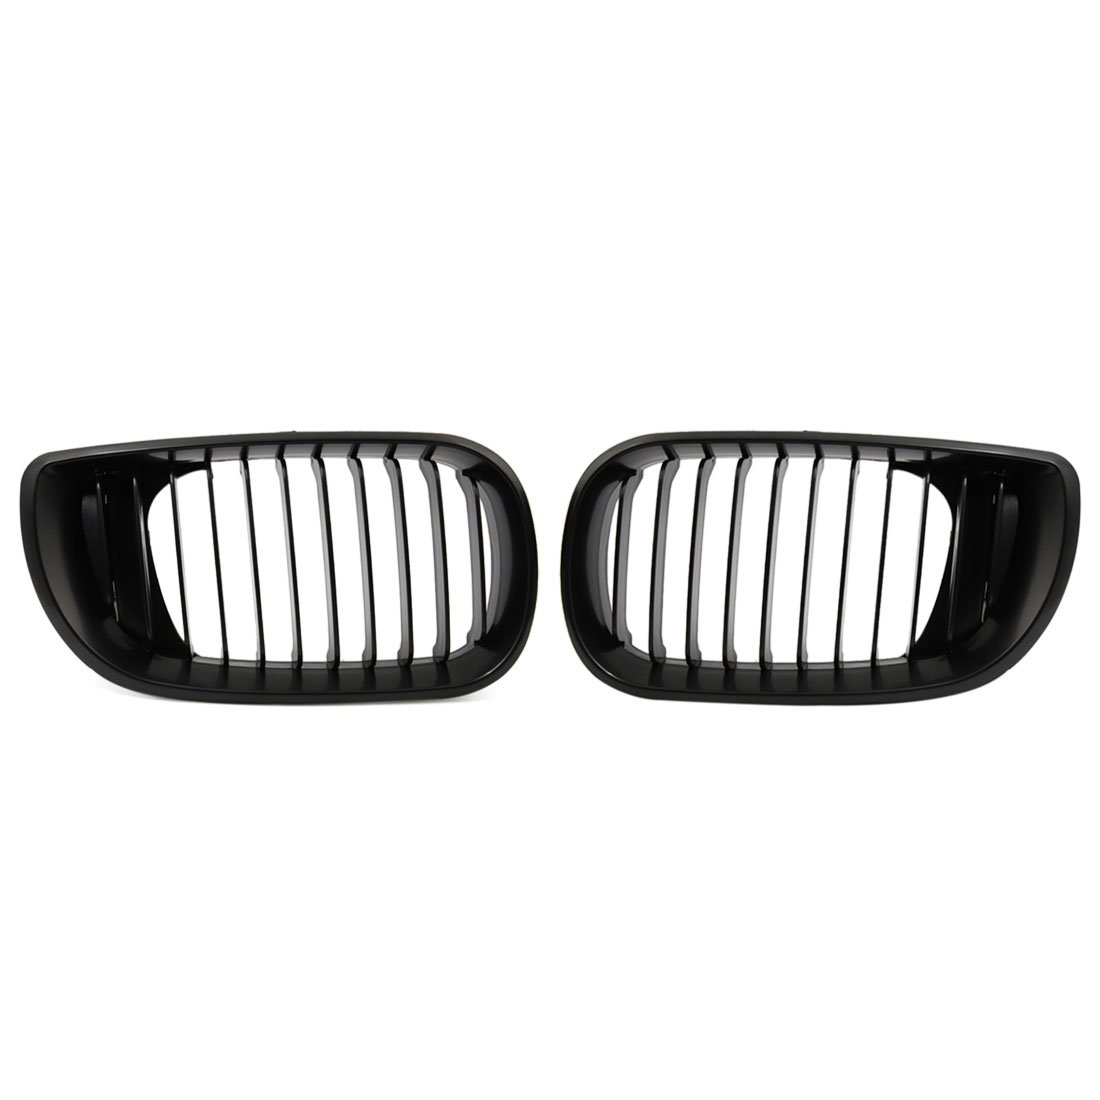 uxcell Matte Black Front Hood Kidney Grille Grill Fit For 02-05 BMW E46 4D Sedan 318i 320i 323i 328i by uxcell